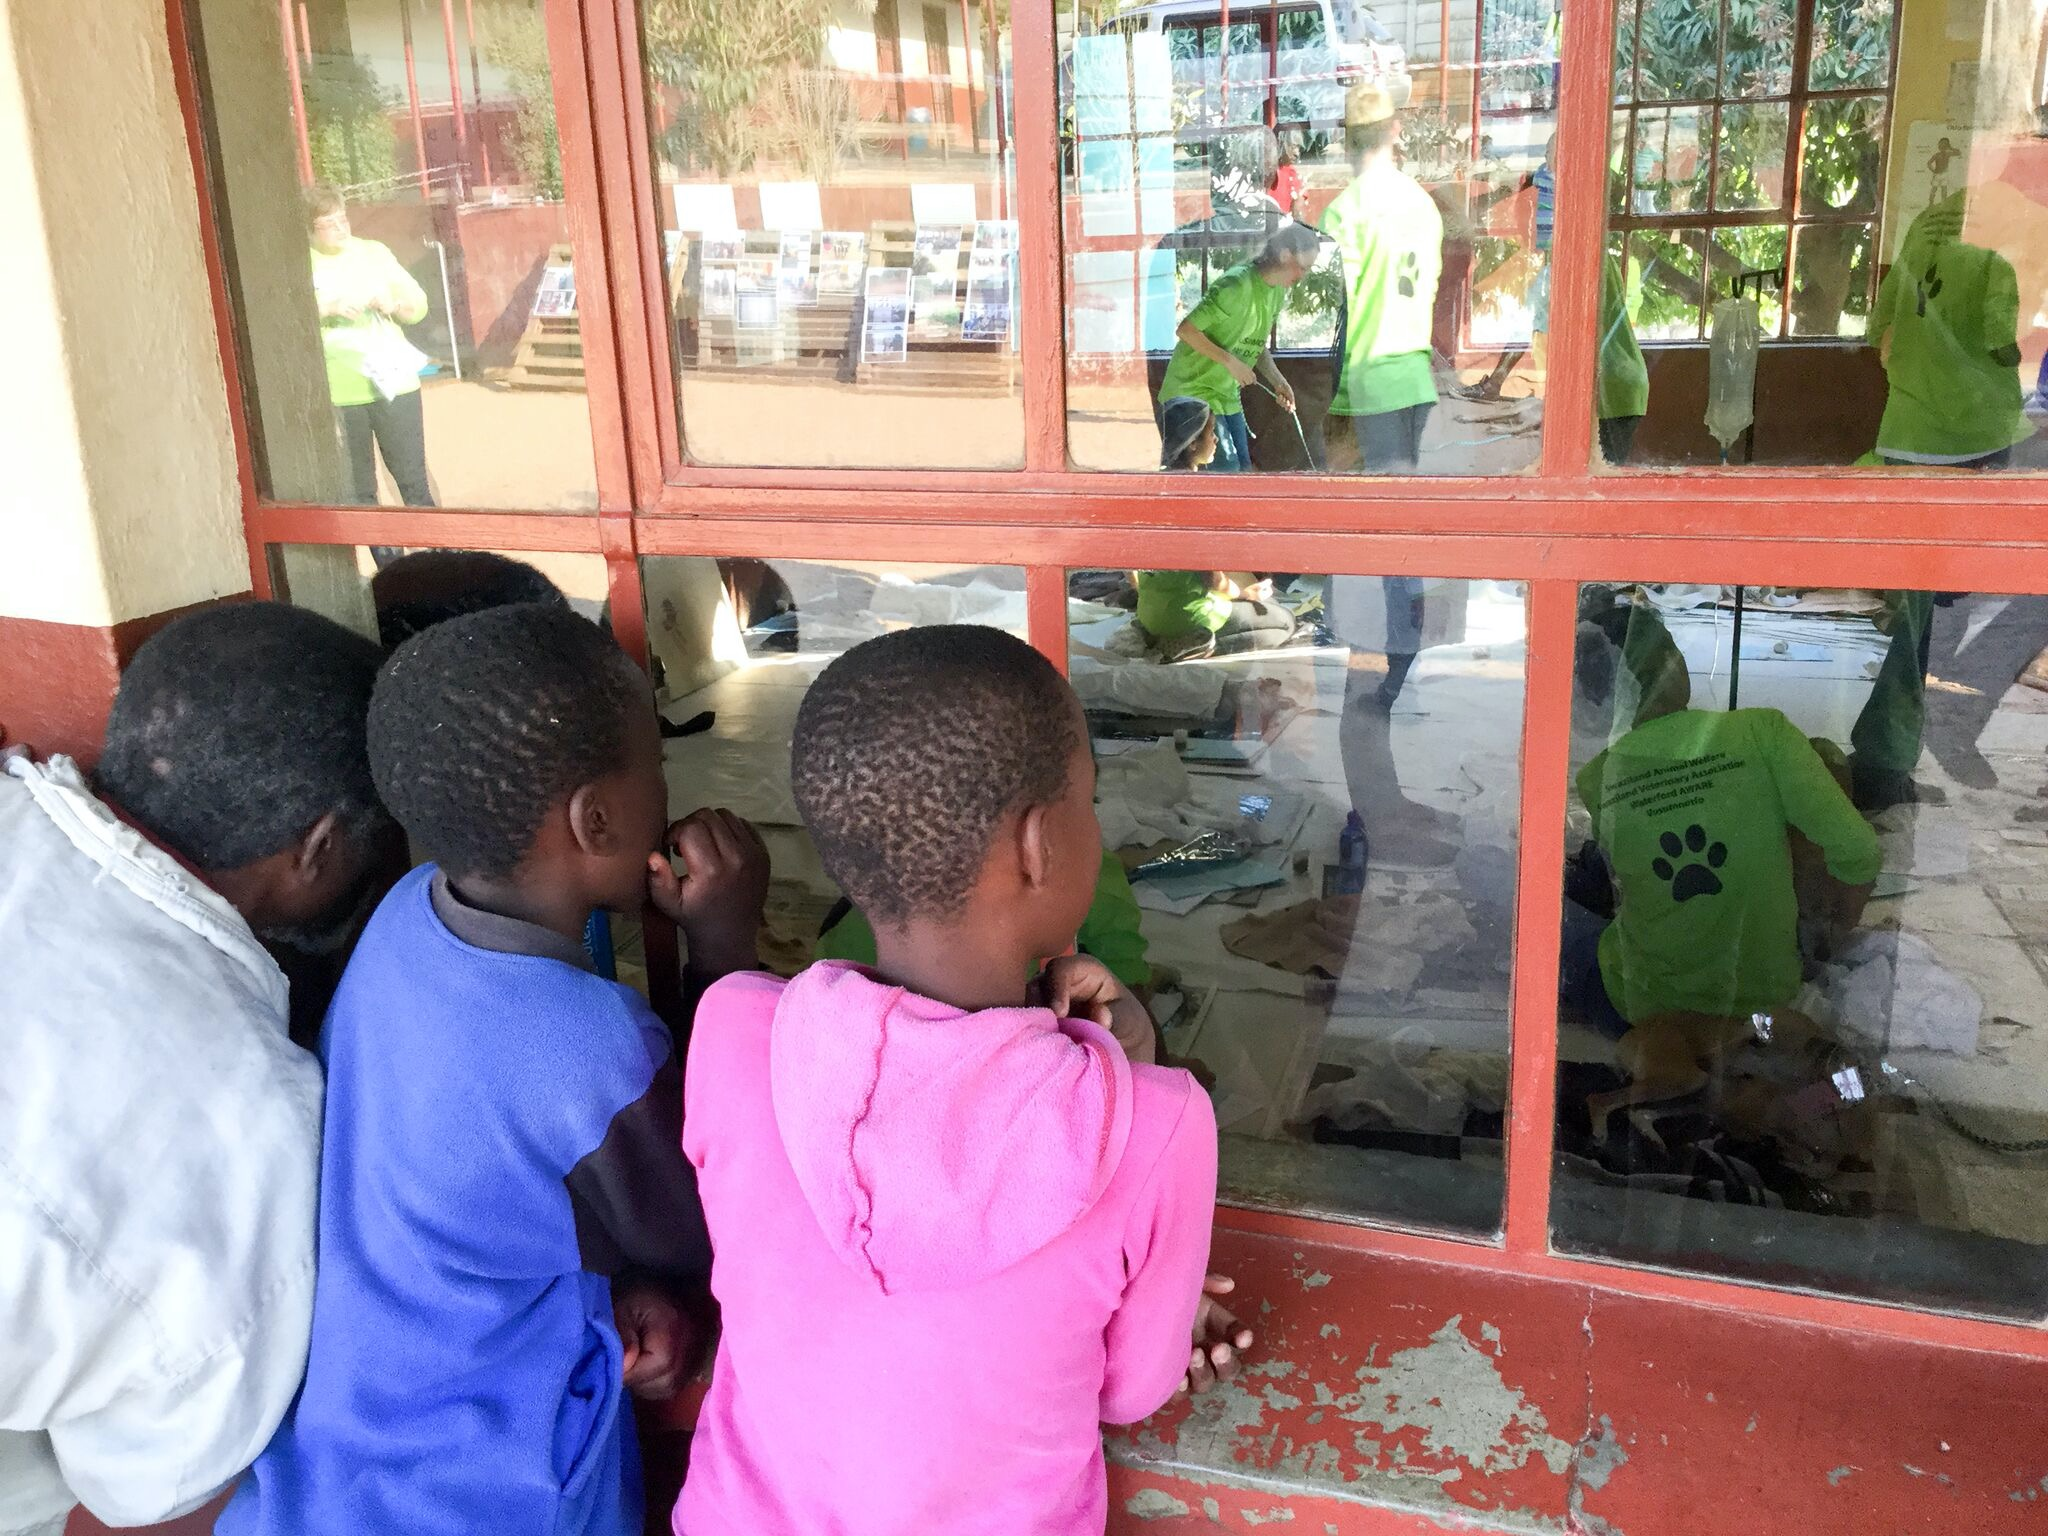 Teaching local children how to care for and respect dogs